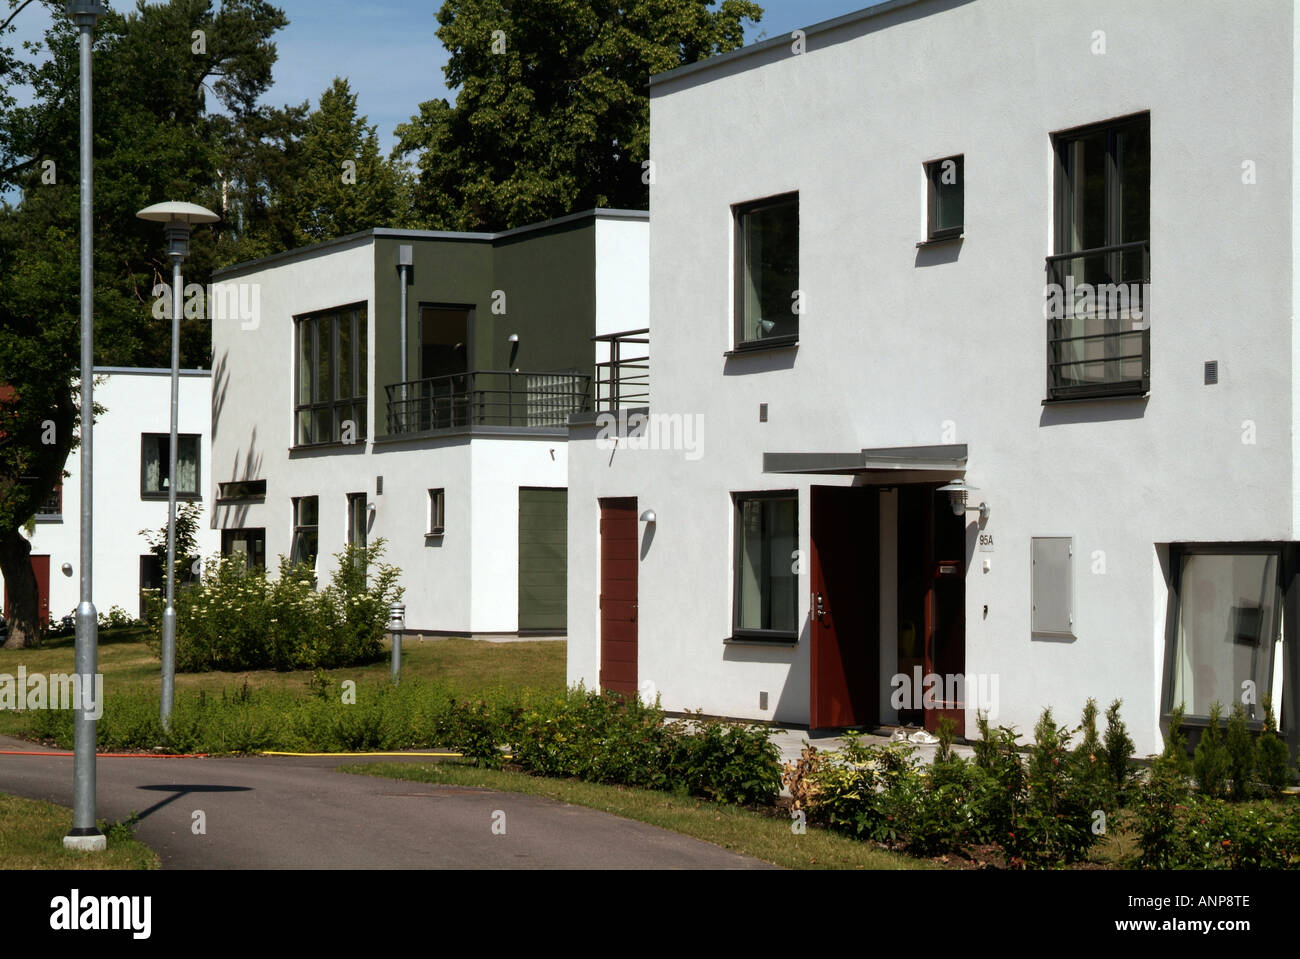 modern swedish houses housing home energy efficient stock modern swedish houses housing home energy efficient scandinavian contemporary building